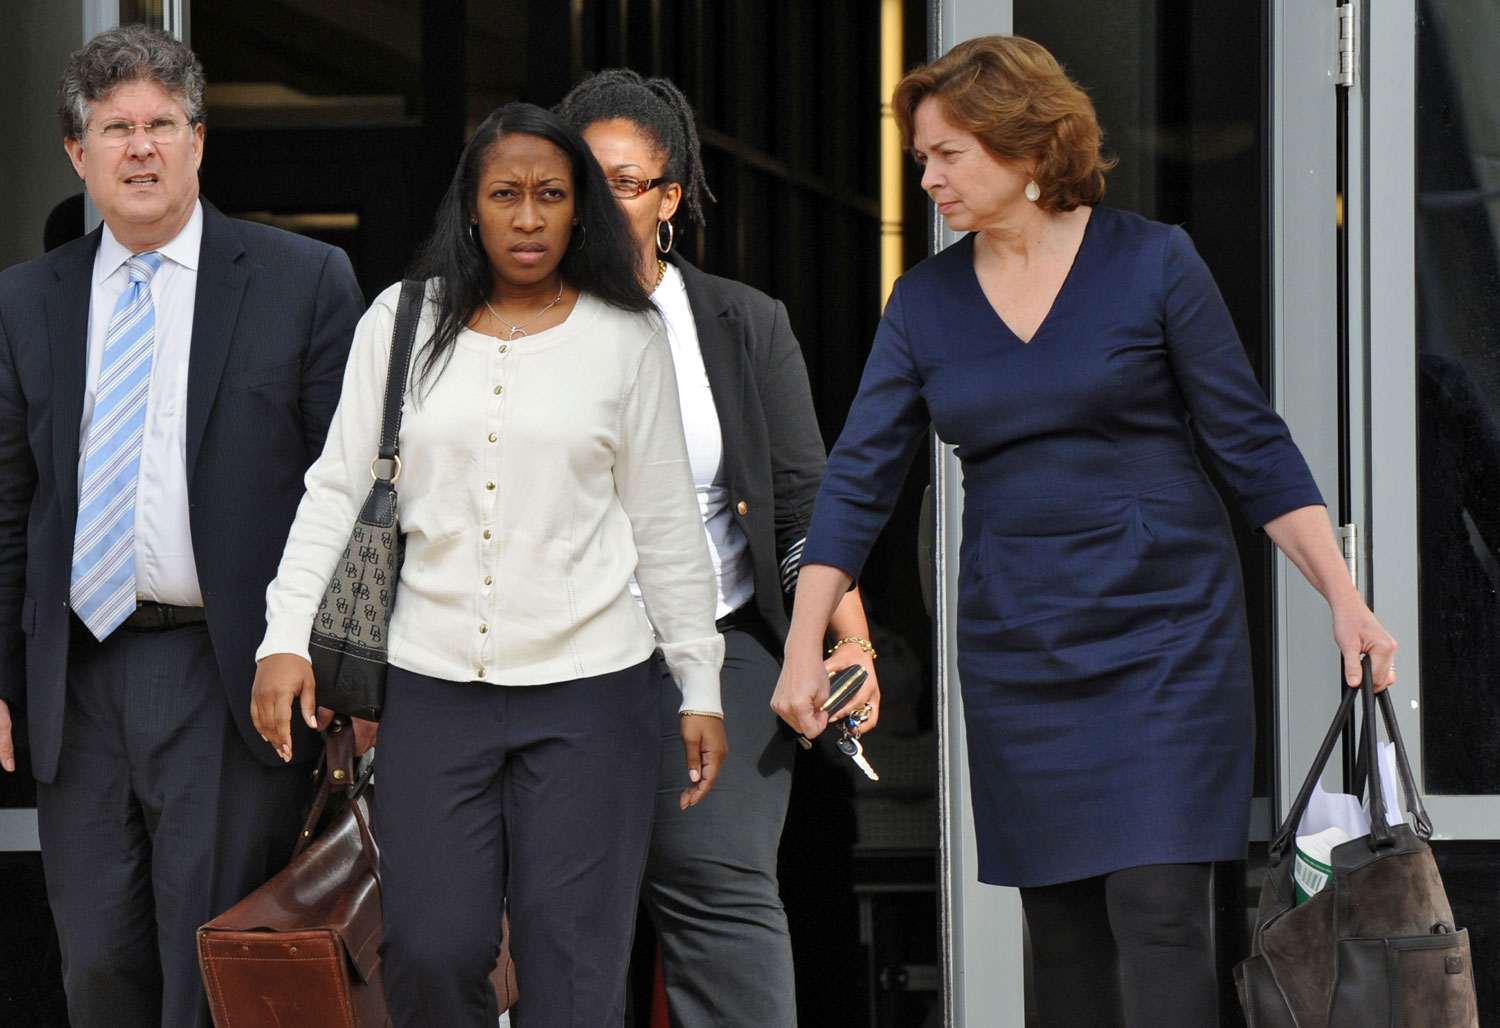 pemMarissa-Alexander-walks-out-of-the-Duval-County-Courthouse-with-her-lawyers-AP-PhotoThe-Florida-Times-Union-Bob-Mackemp